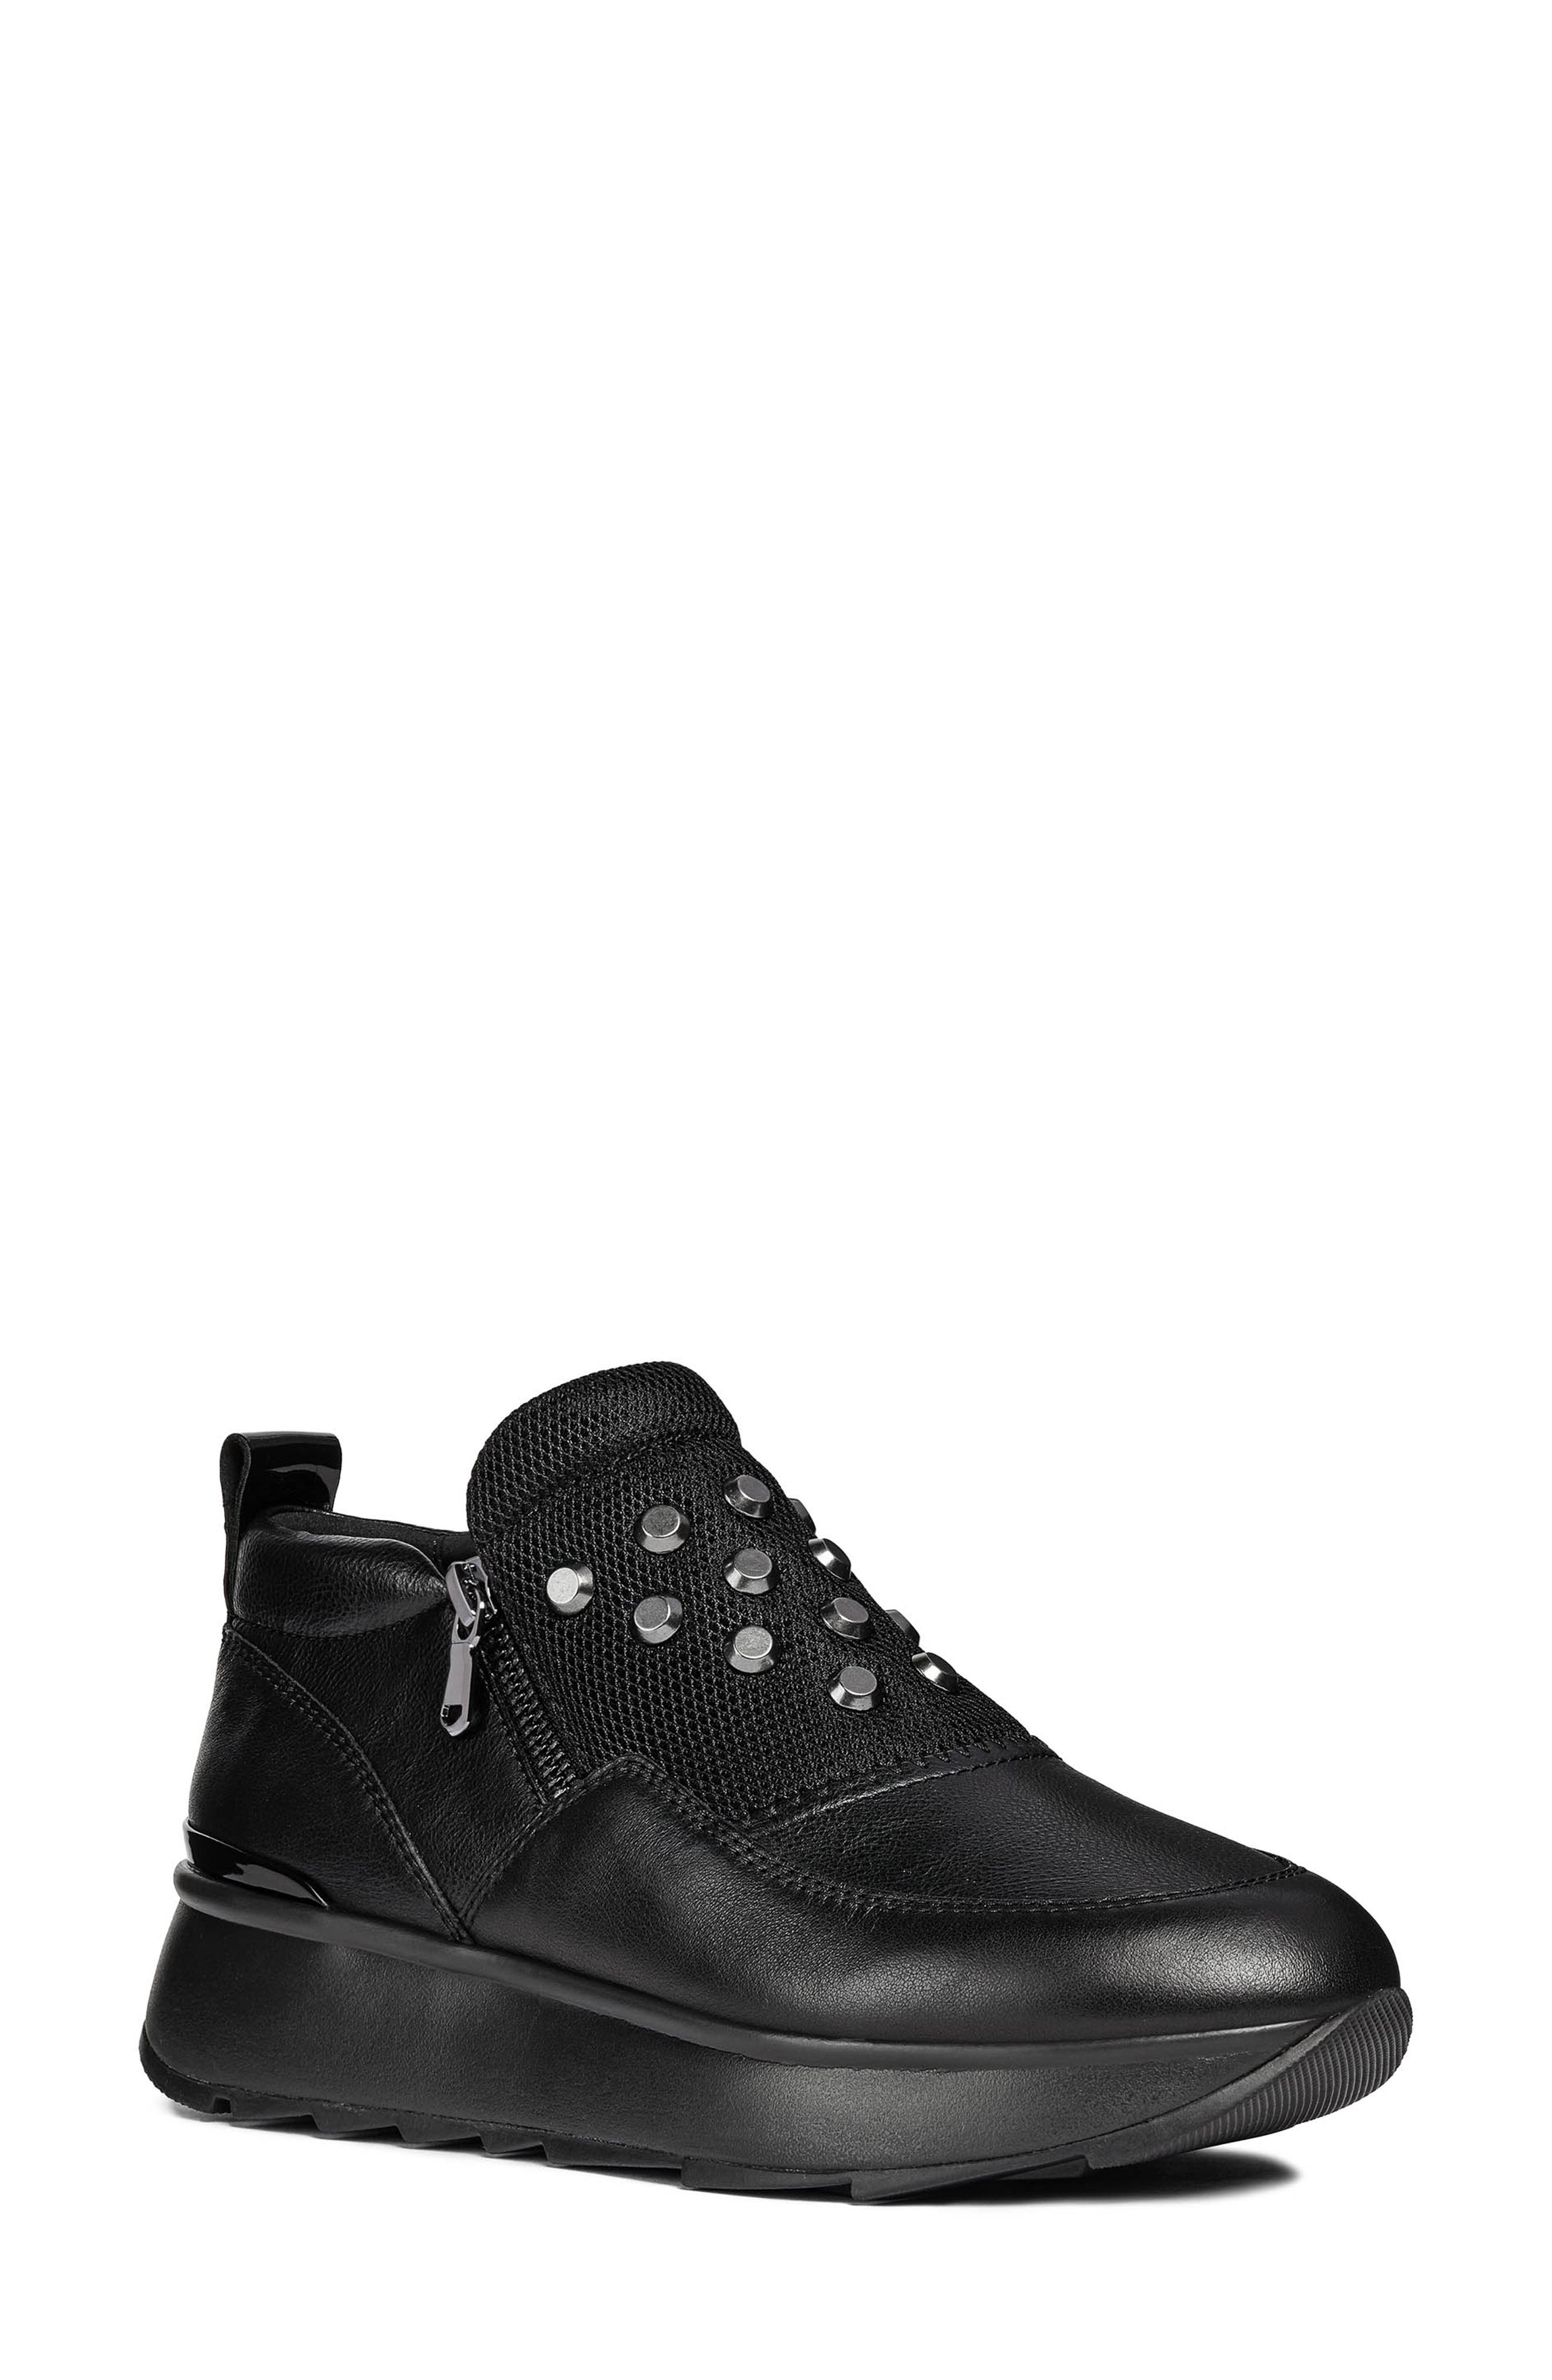 Gendry Sneaker,                             Main thumbnail 1, color,                             BLACK LEATHER